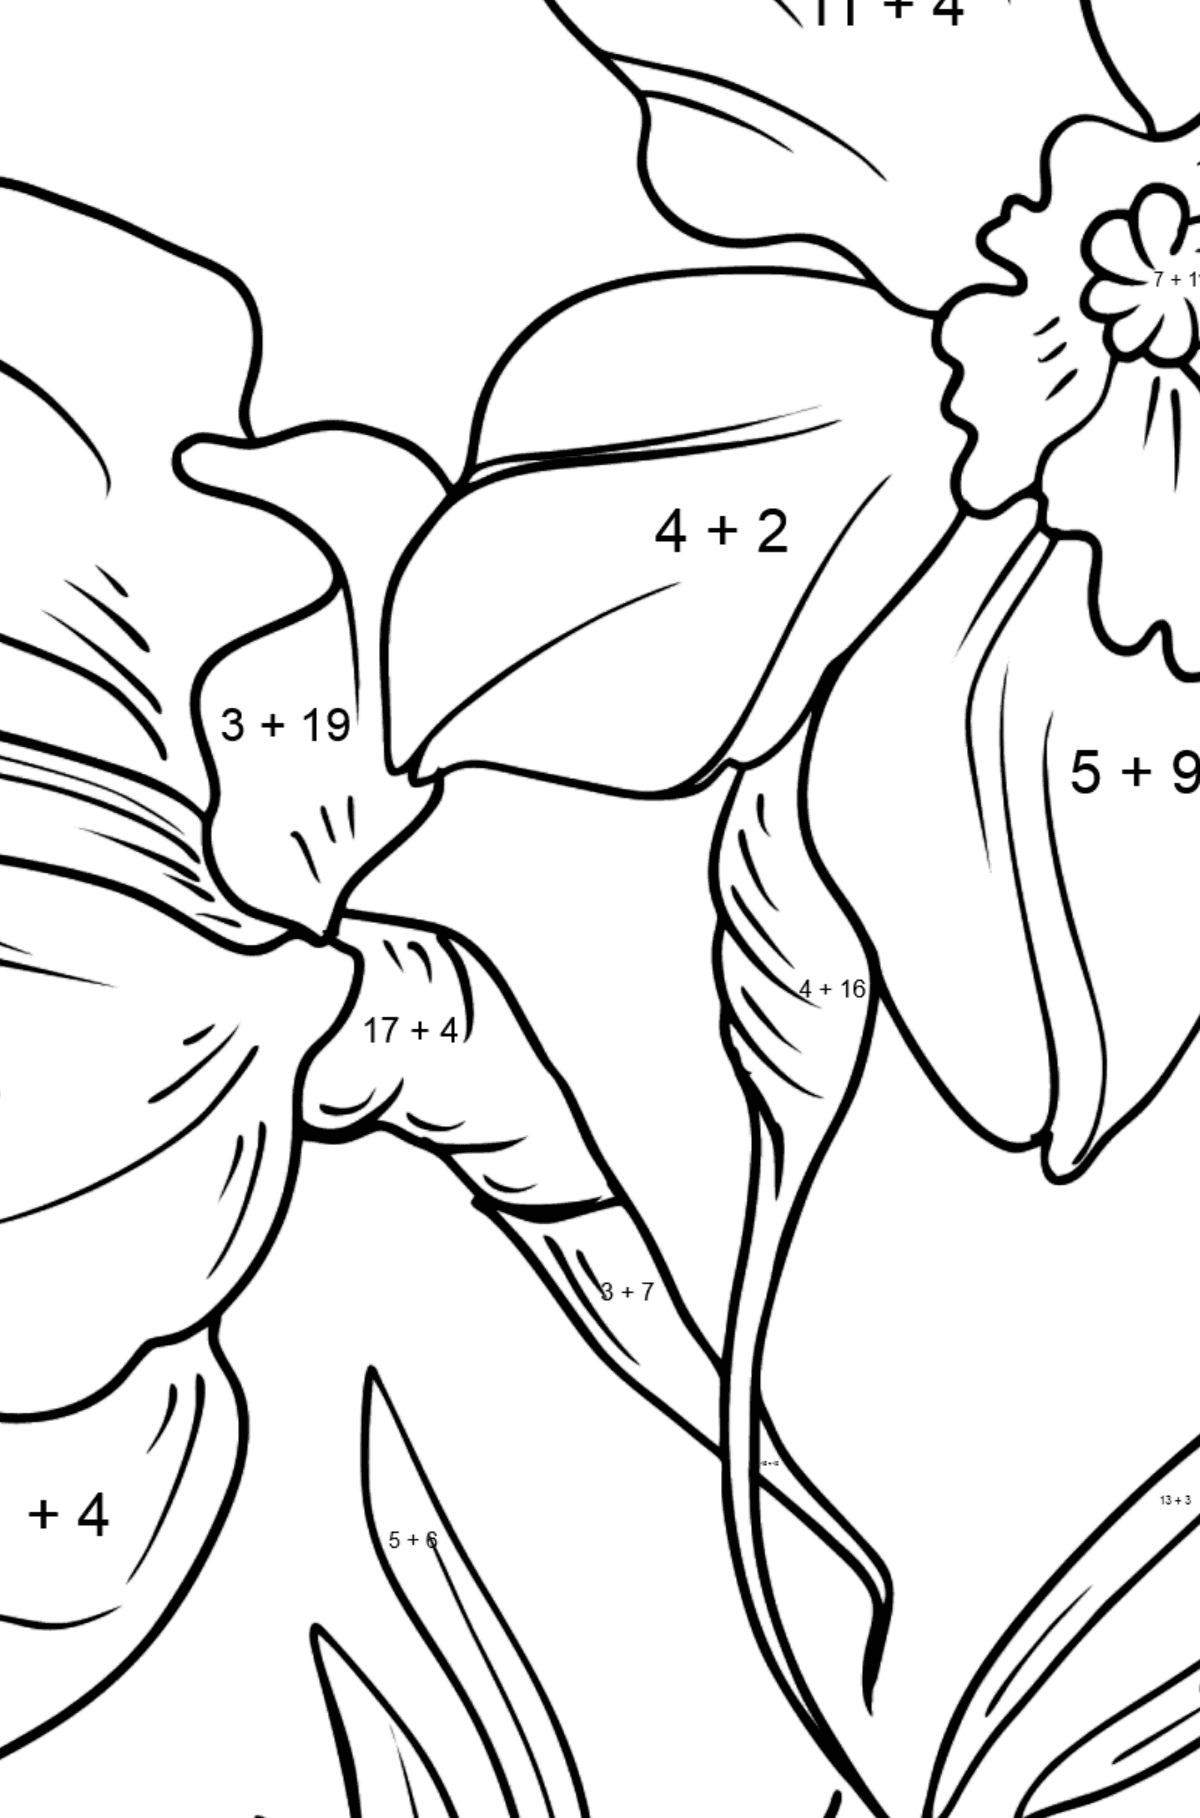 Flower Coloring Page - Daffodils - Math Coloring - Addition for Kids